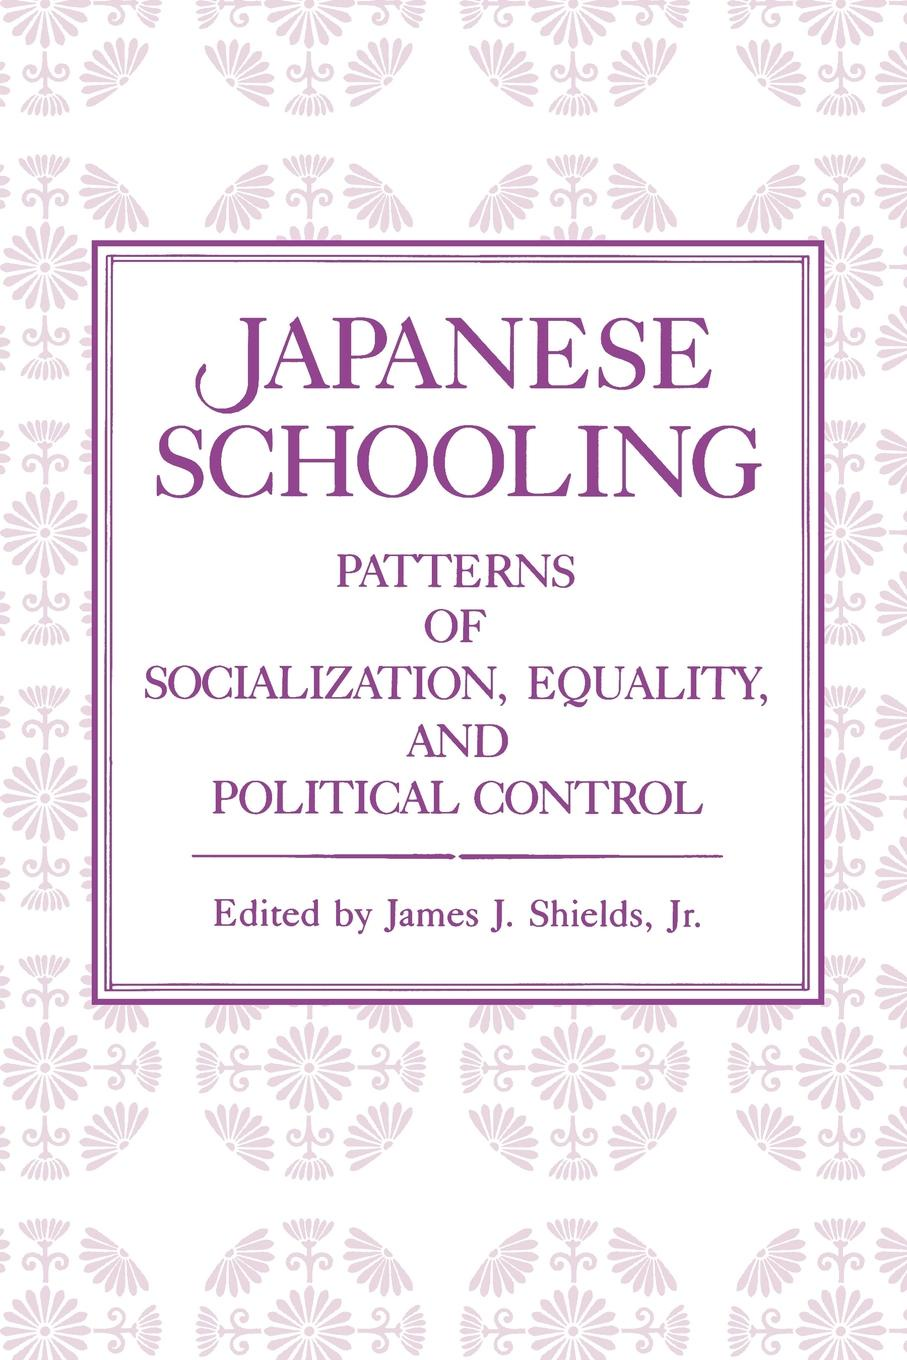 Japanese Schooling. Patterns of Socialization, Equality, and Political Control chino n a dictionary of basic japanese sentence patterns